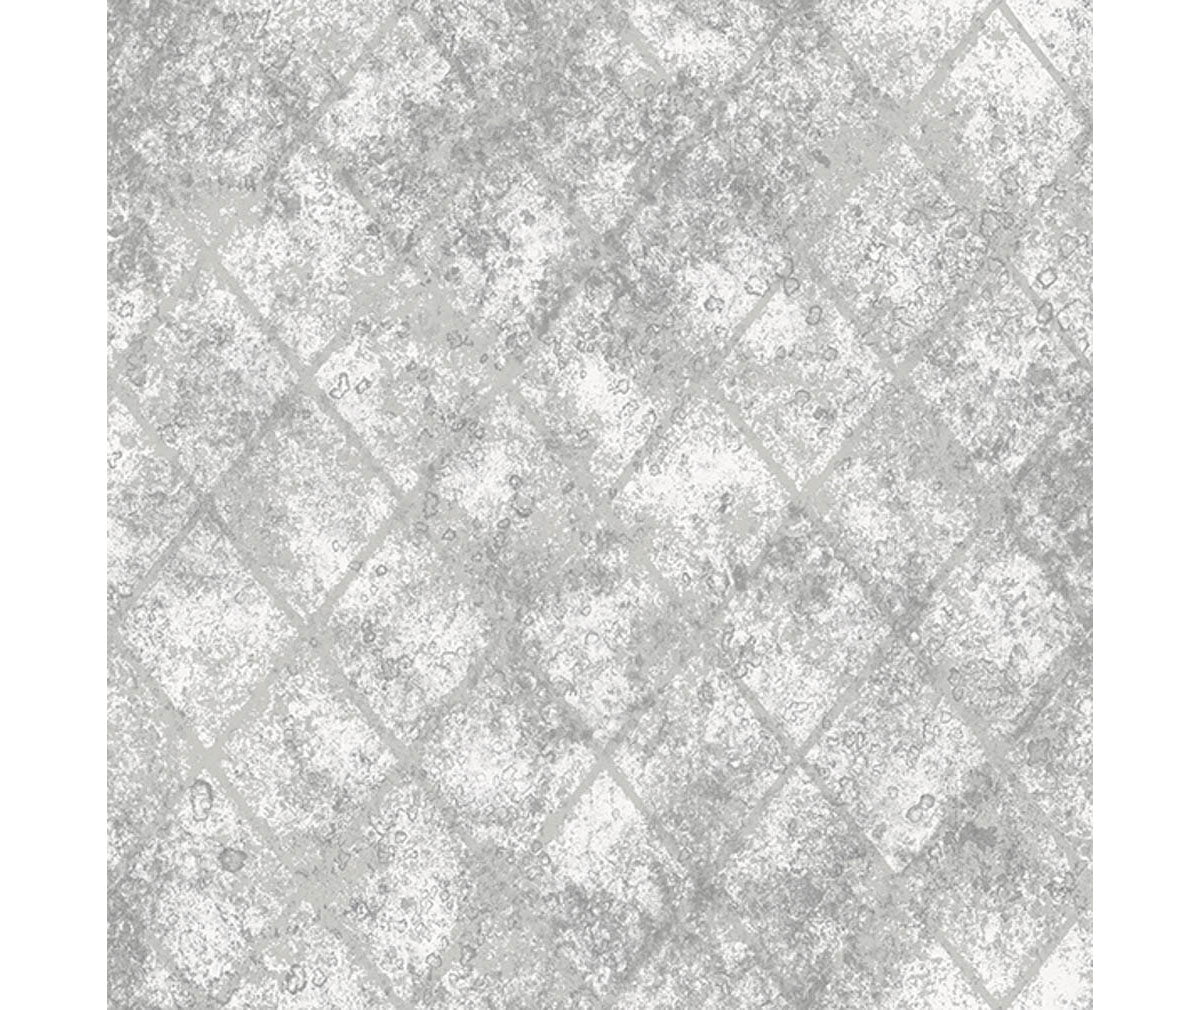 Mercury Glass Silver Distressed Metallic Wallpaper available at Barrydowne Paint